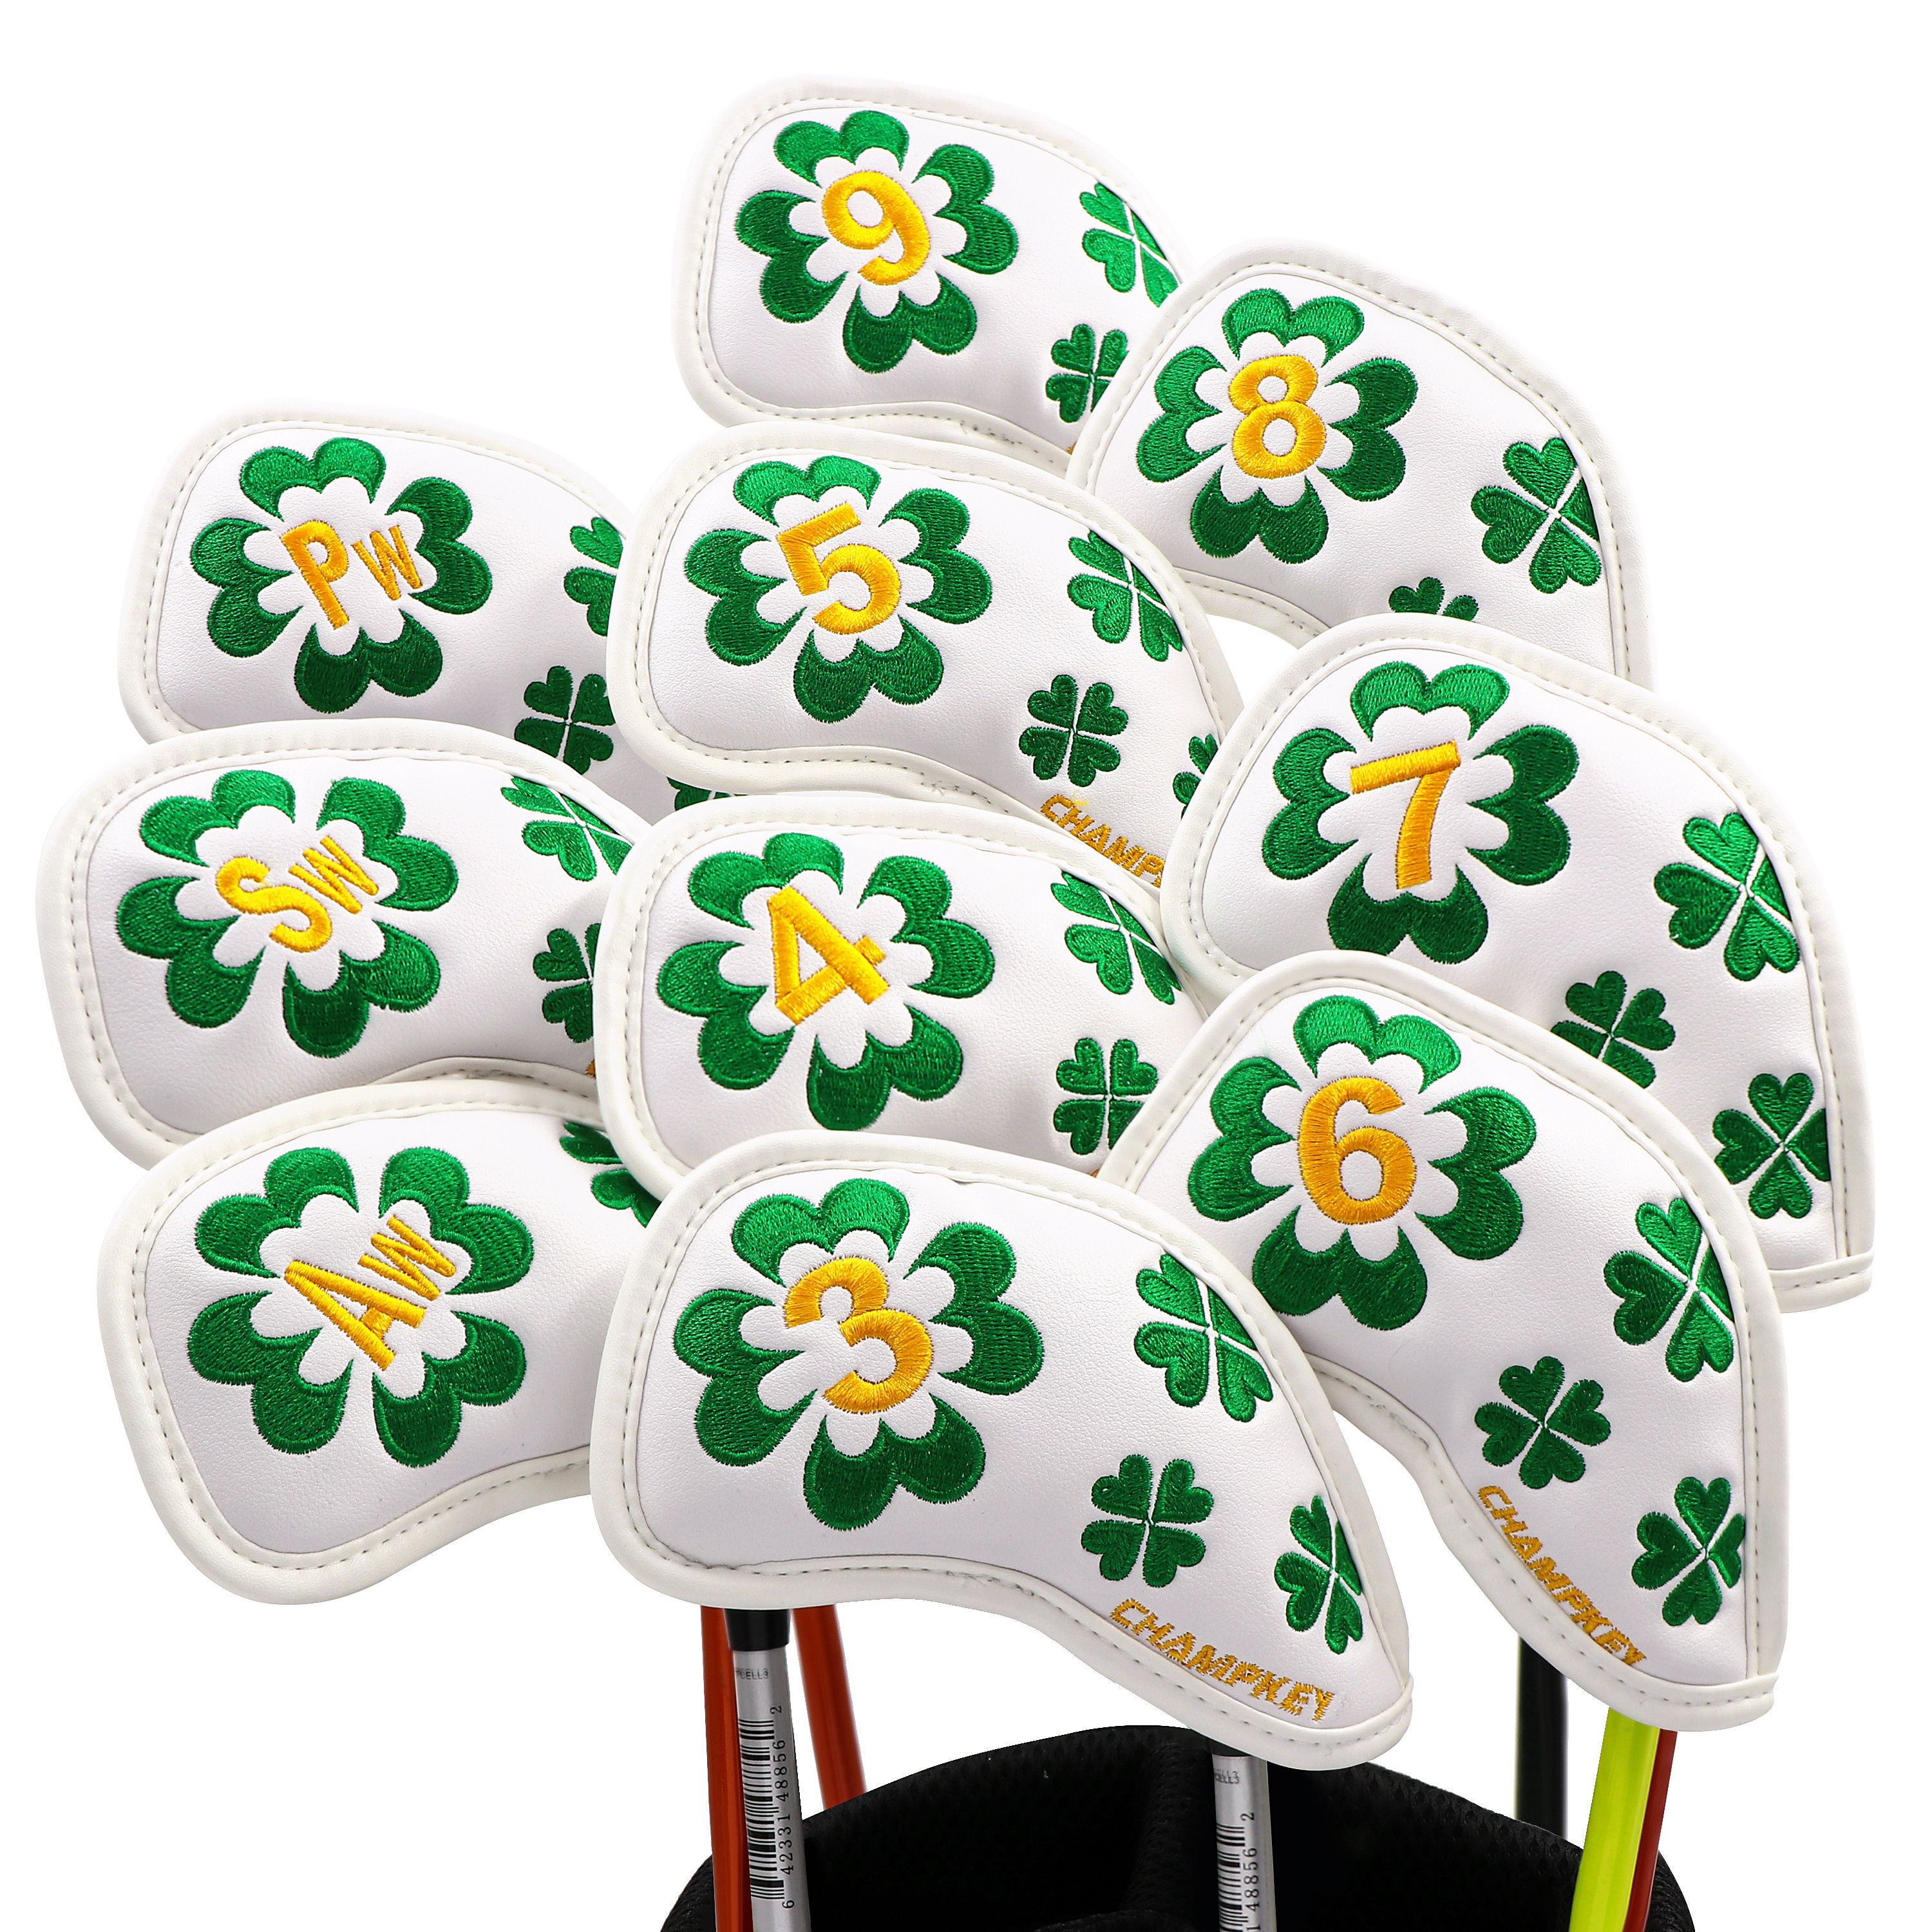 NEW Champkey 10pcs/set Clover PU Leather Golf Iron Headcover Iron Club Covers Set 2 Colors For Choice